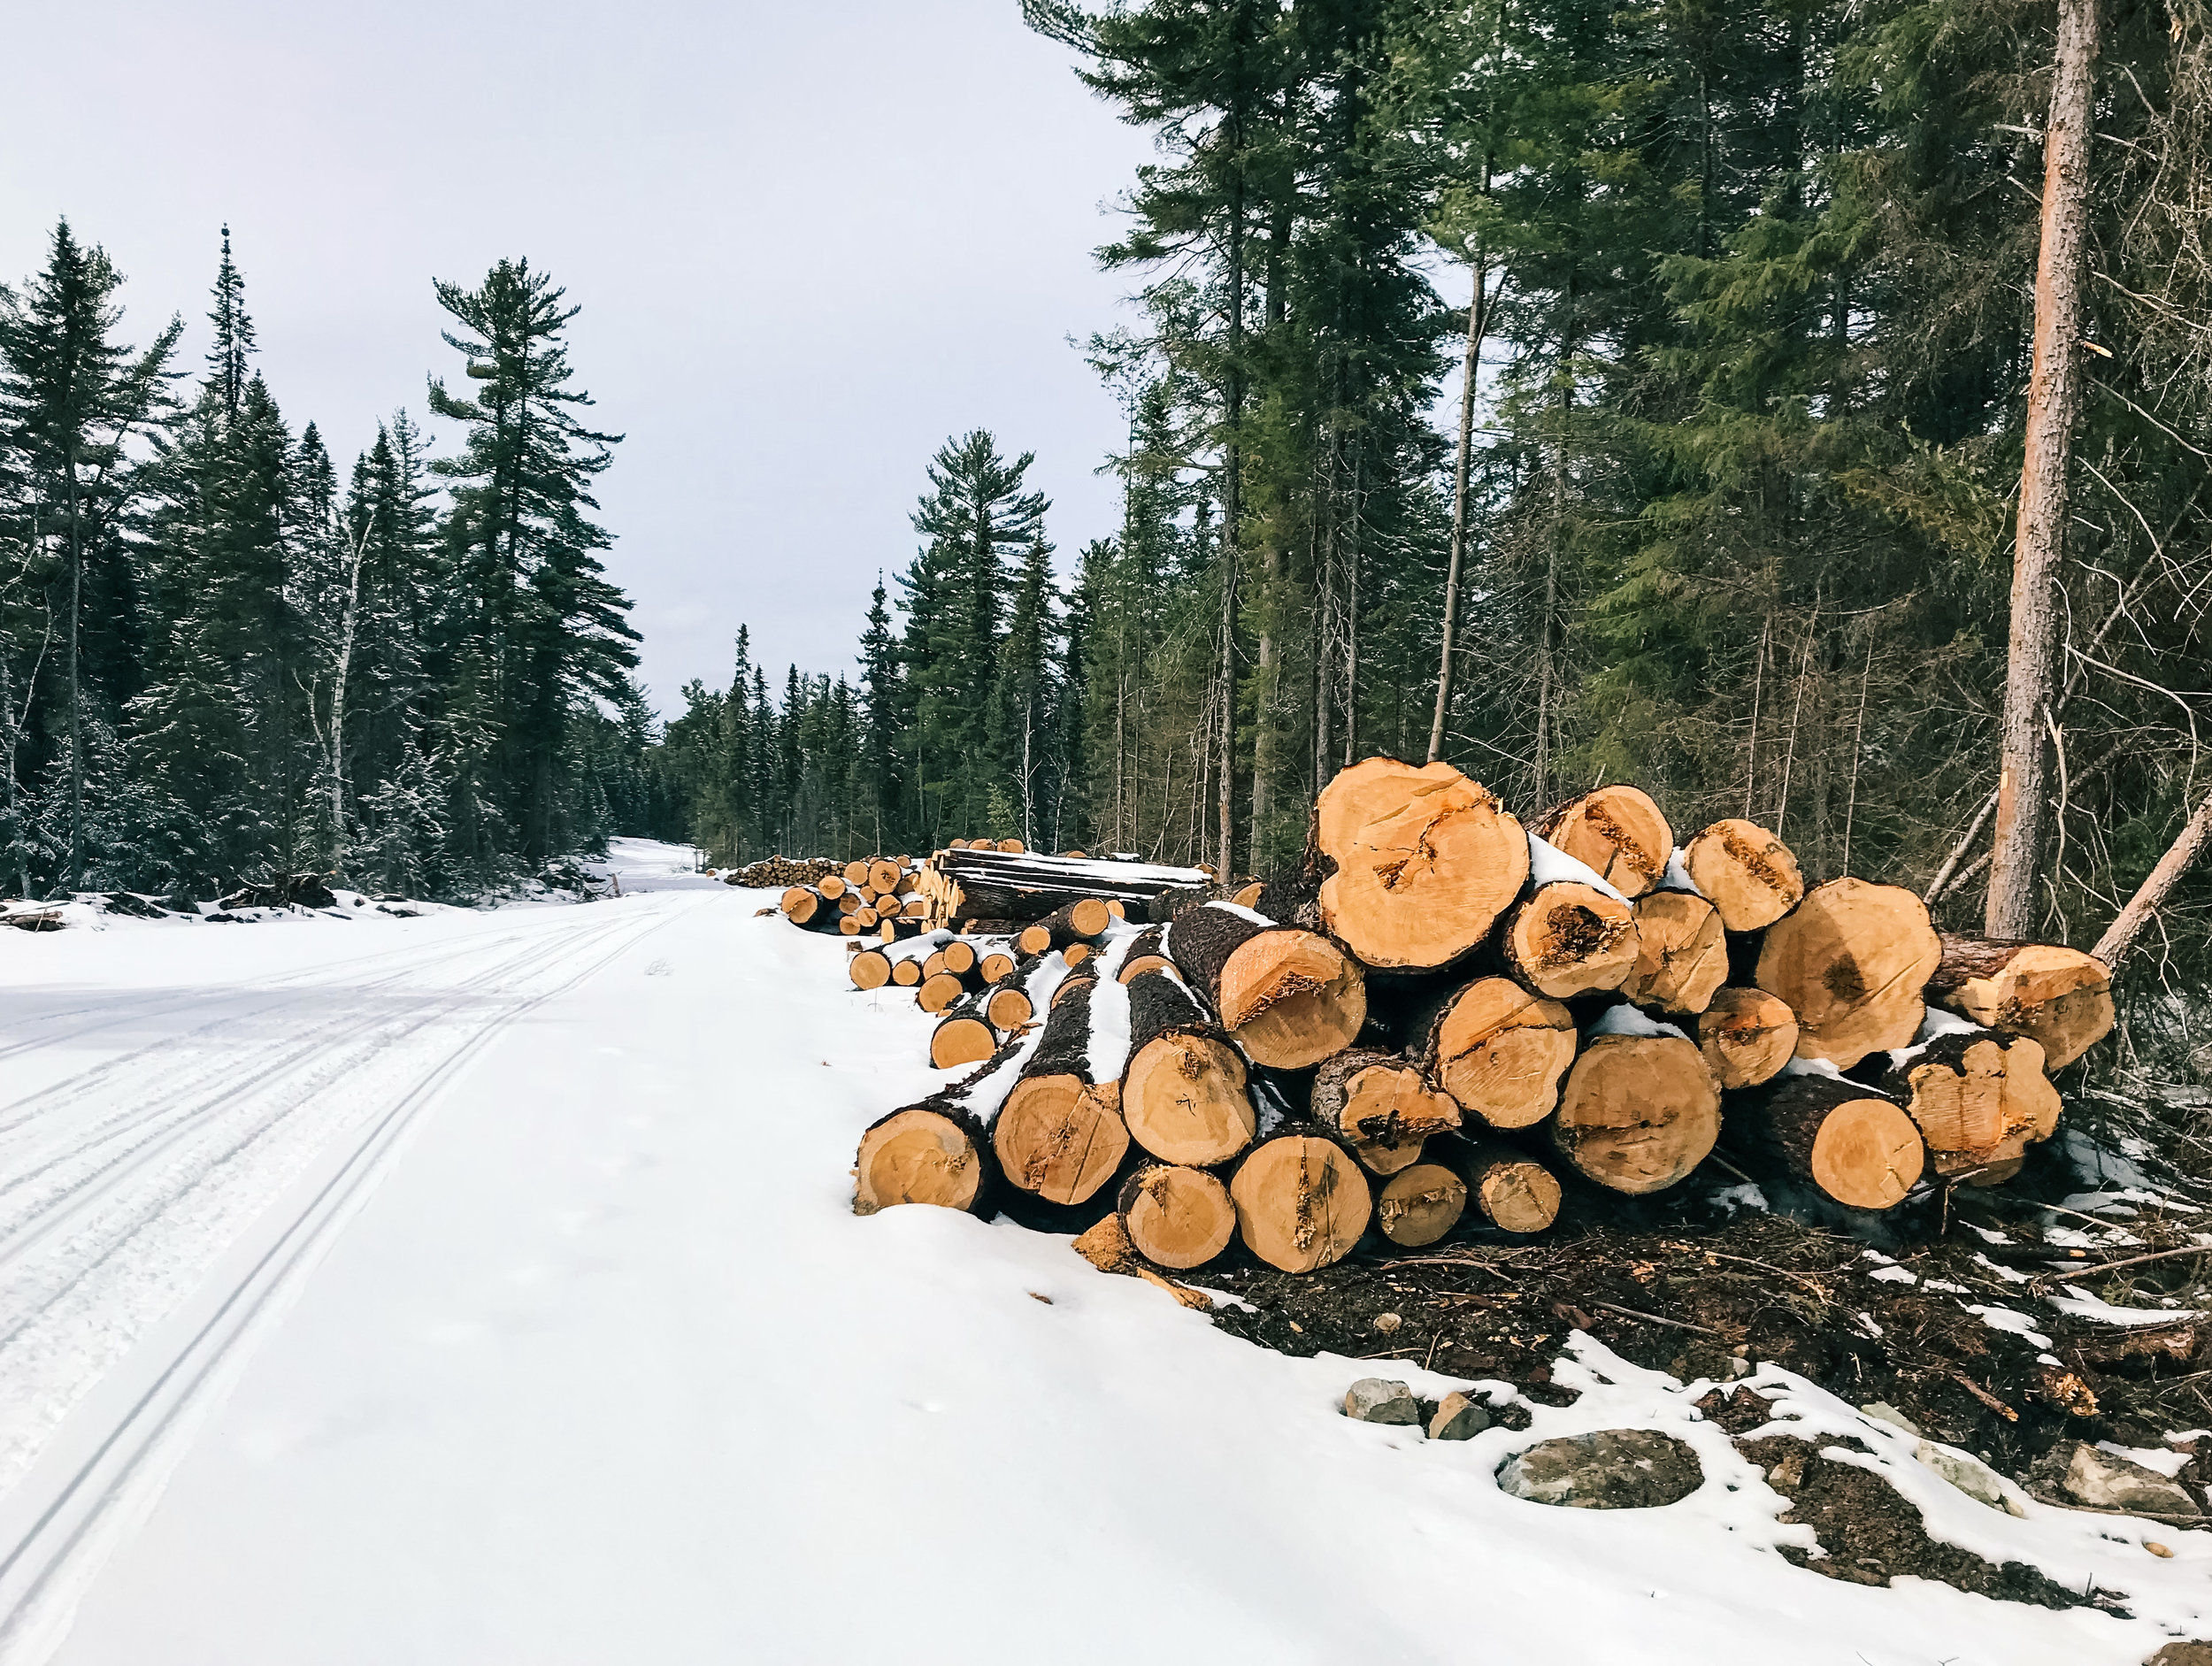 Road Construction at Twinkle Lake, April 12, 2018.